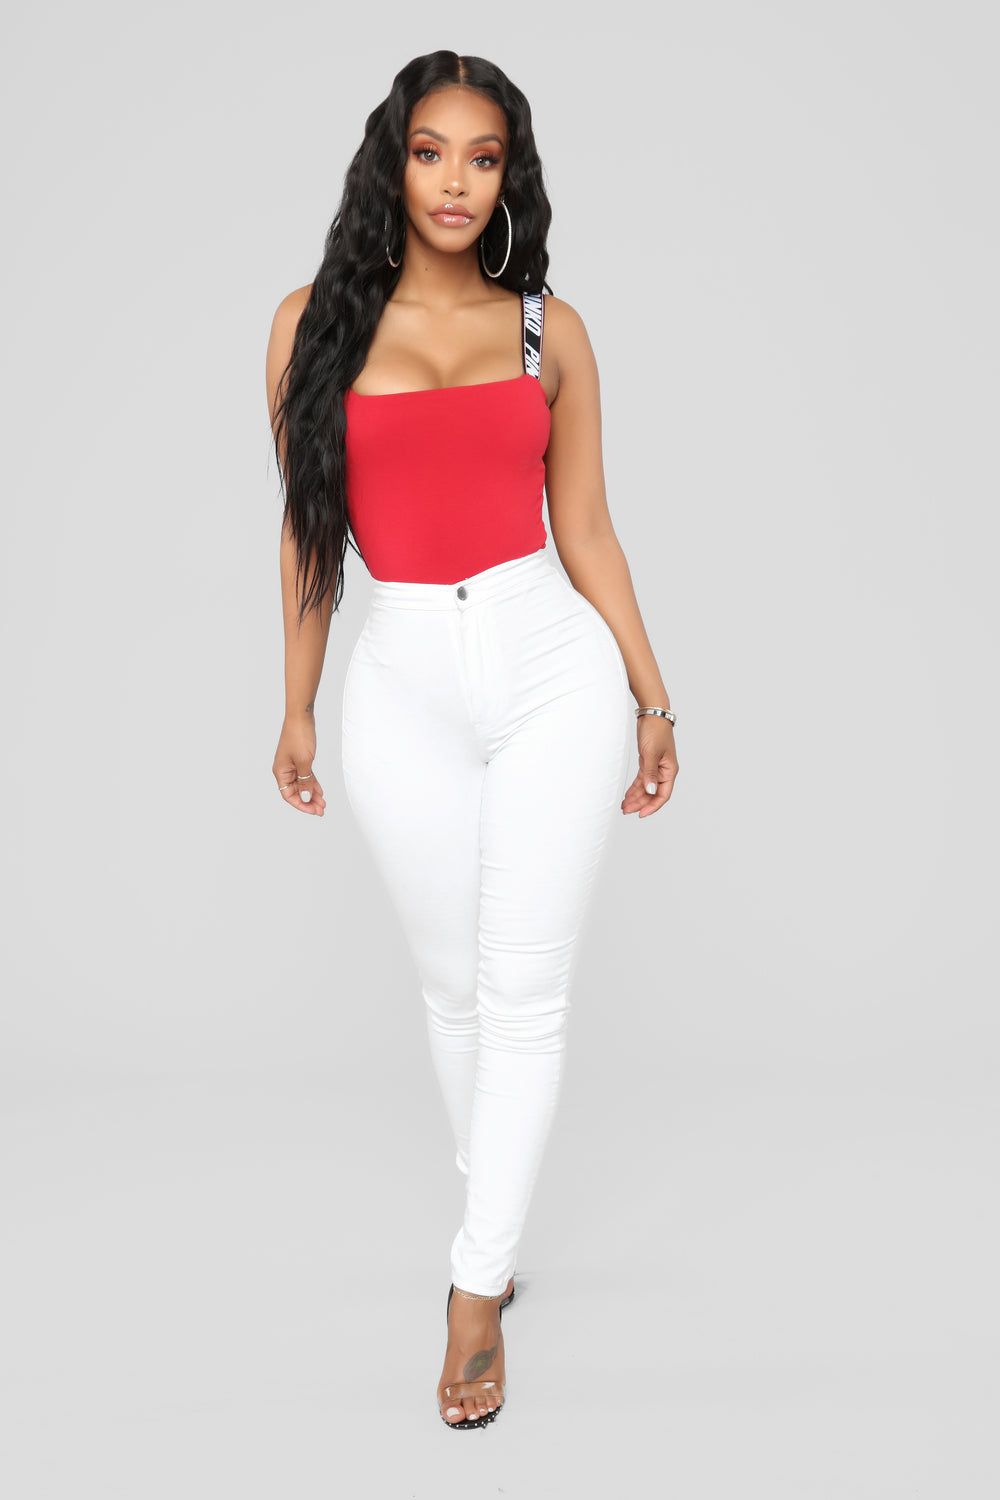 Stay Ready Bodysuit - Red